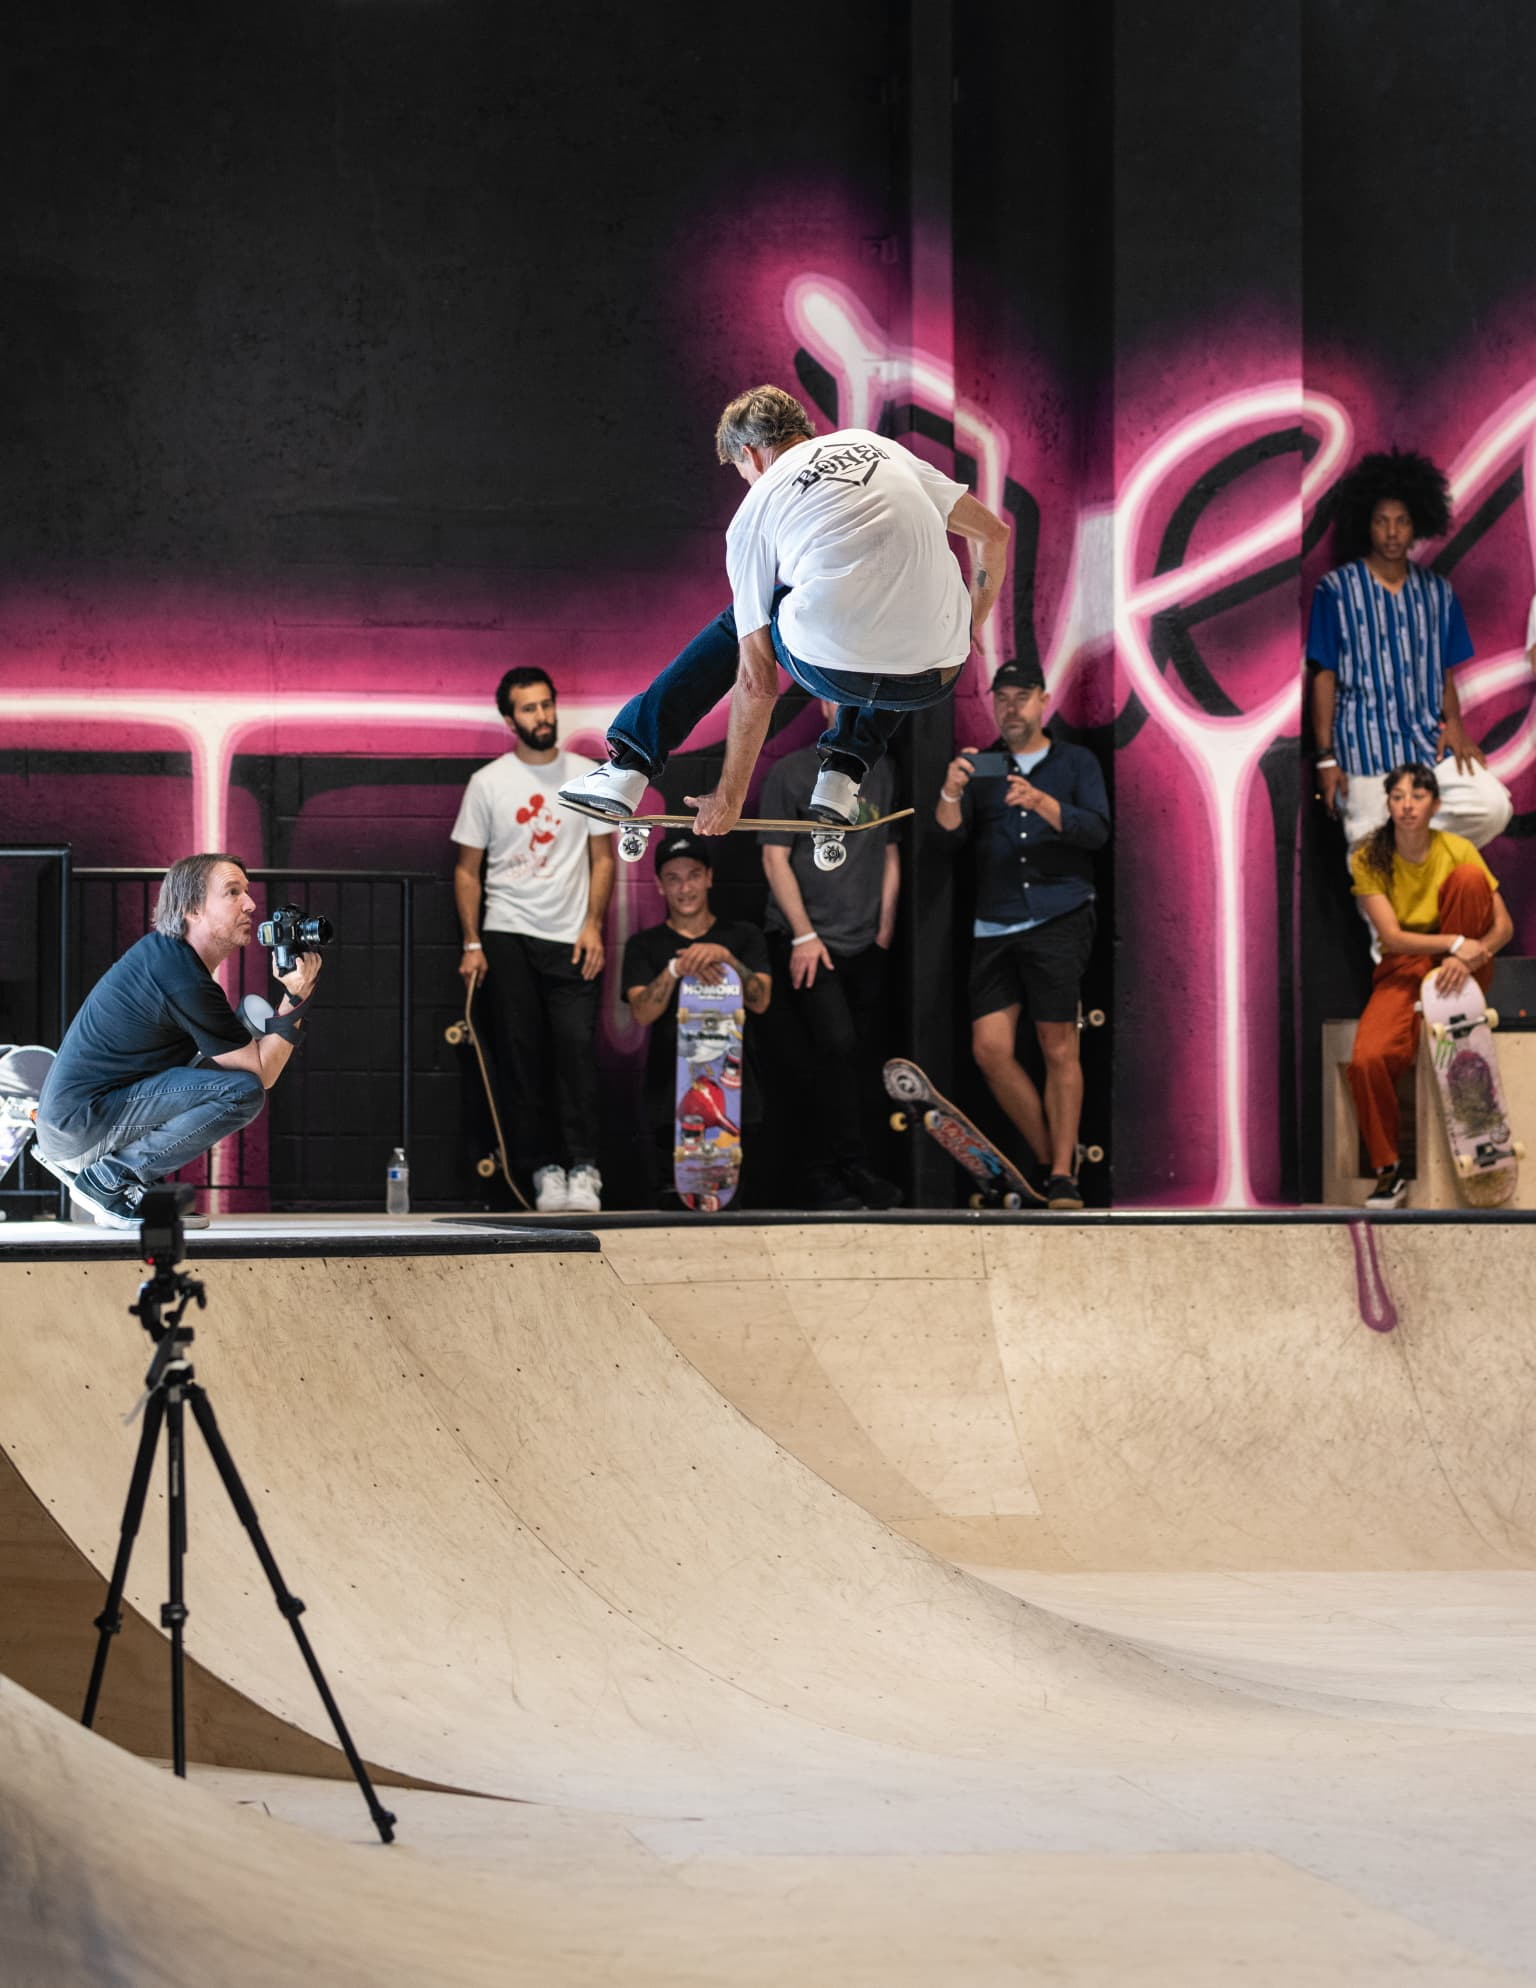 Tony Hawk's 5th Annual East Coast Super Session Charity Event